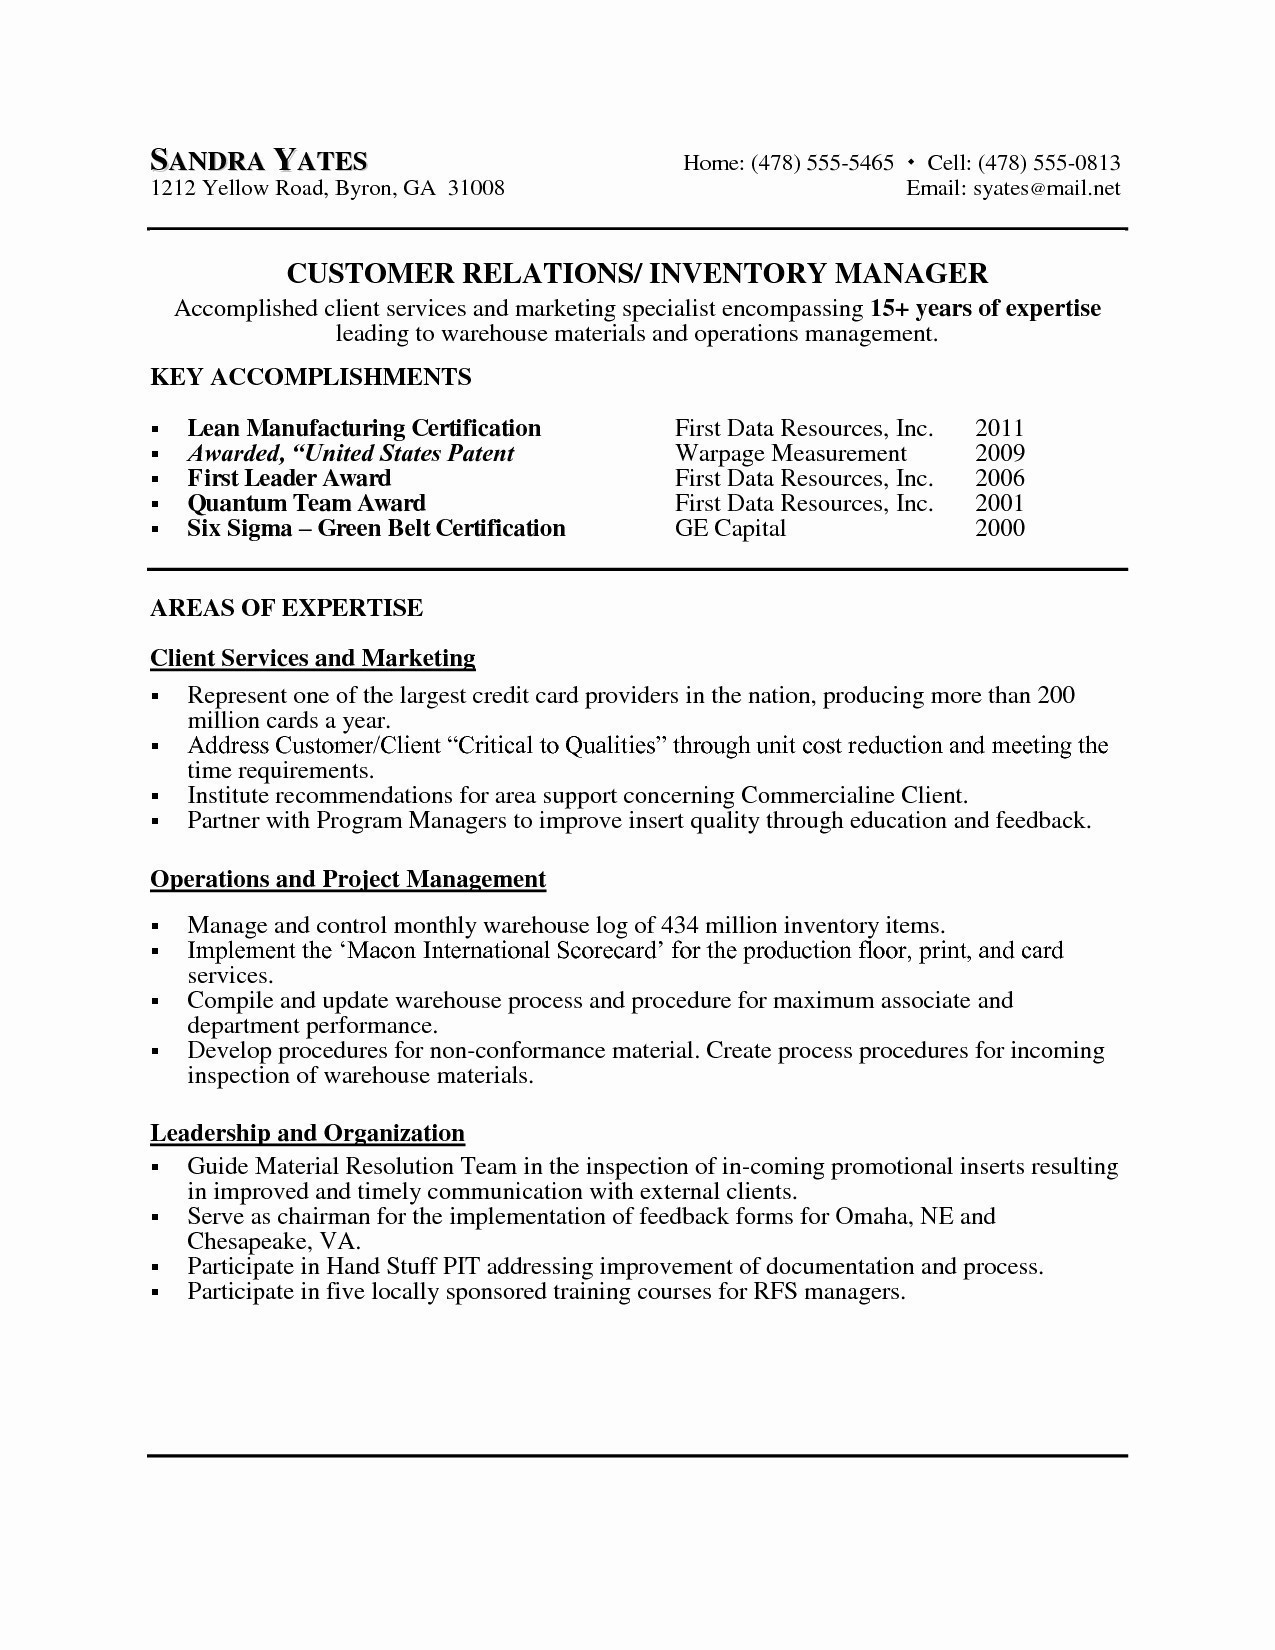 Resume for Internal Promotion - Resume for Internal Promotion Template Best Example Resume